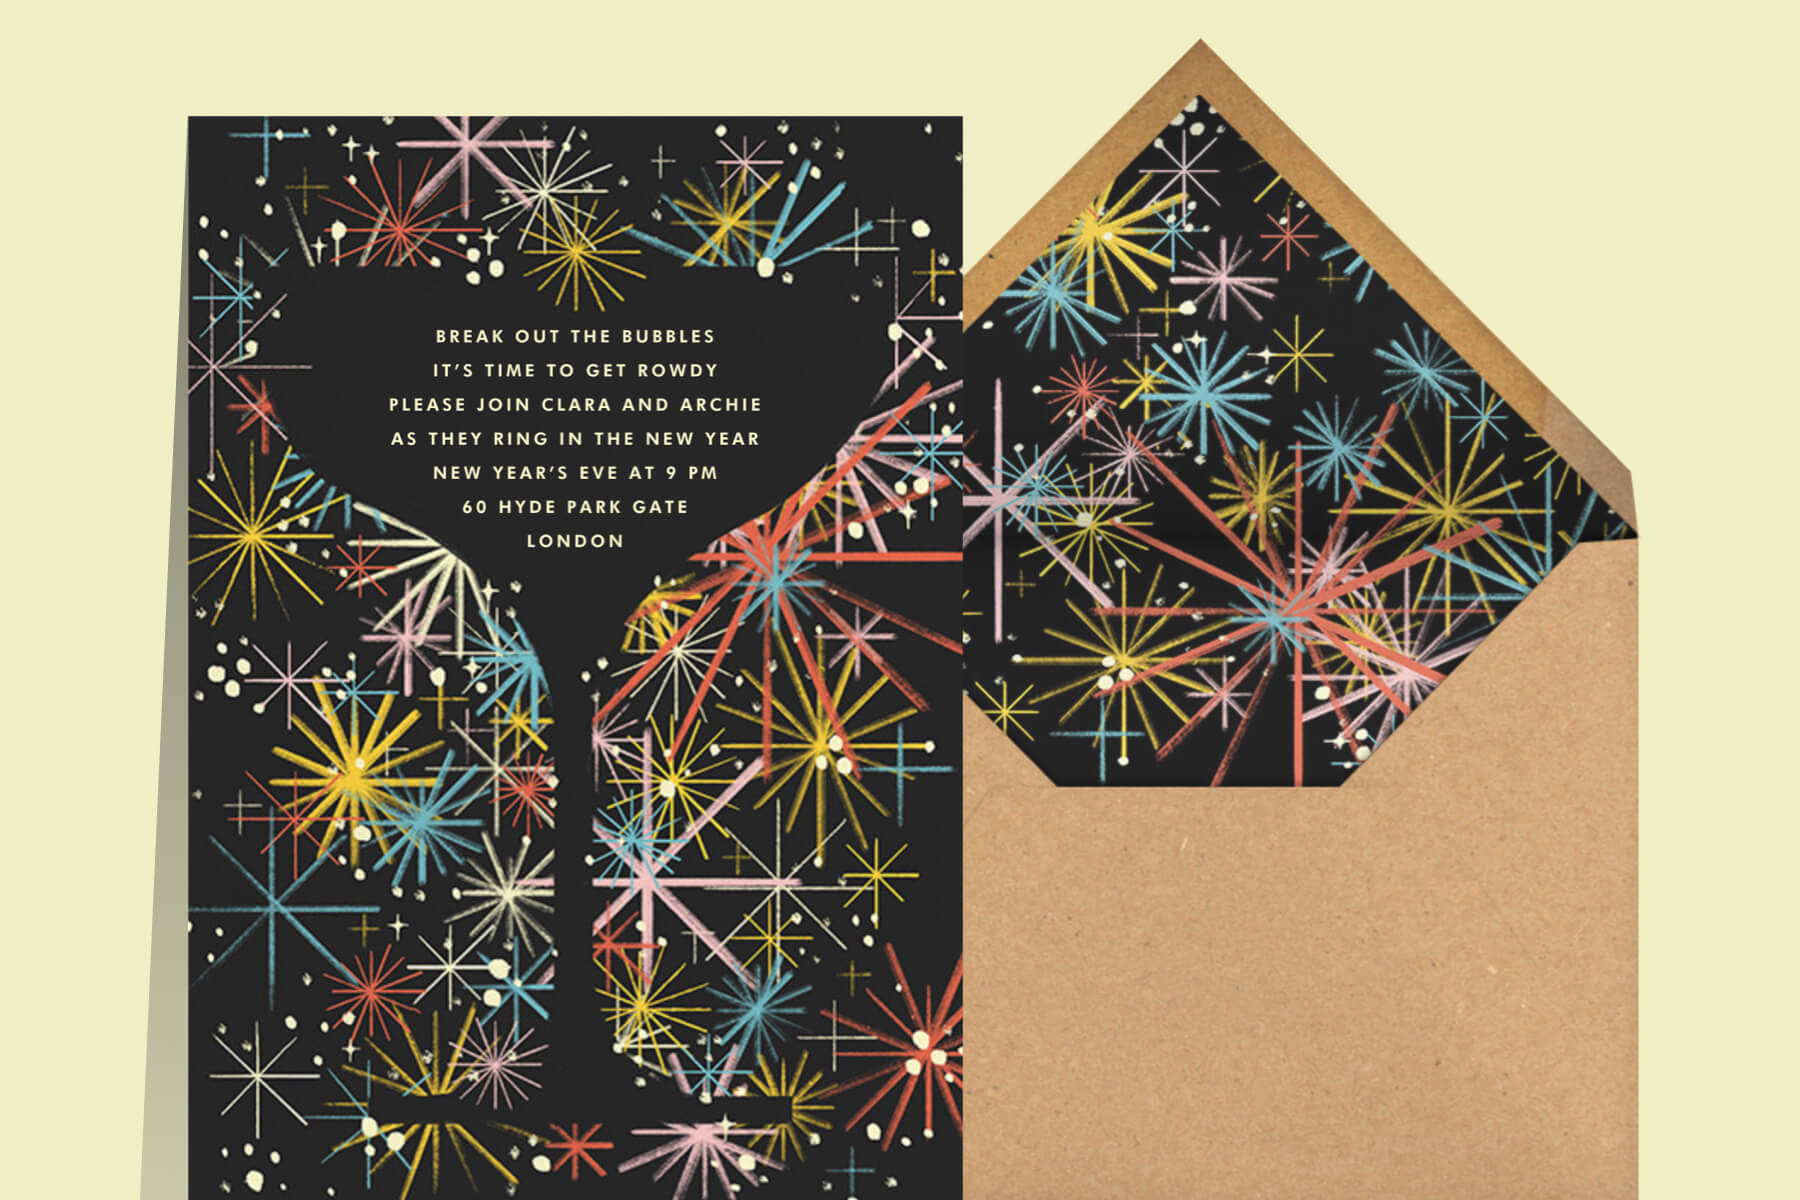 retro New Year's Eve invitations with fireworks behind a cocktail glass